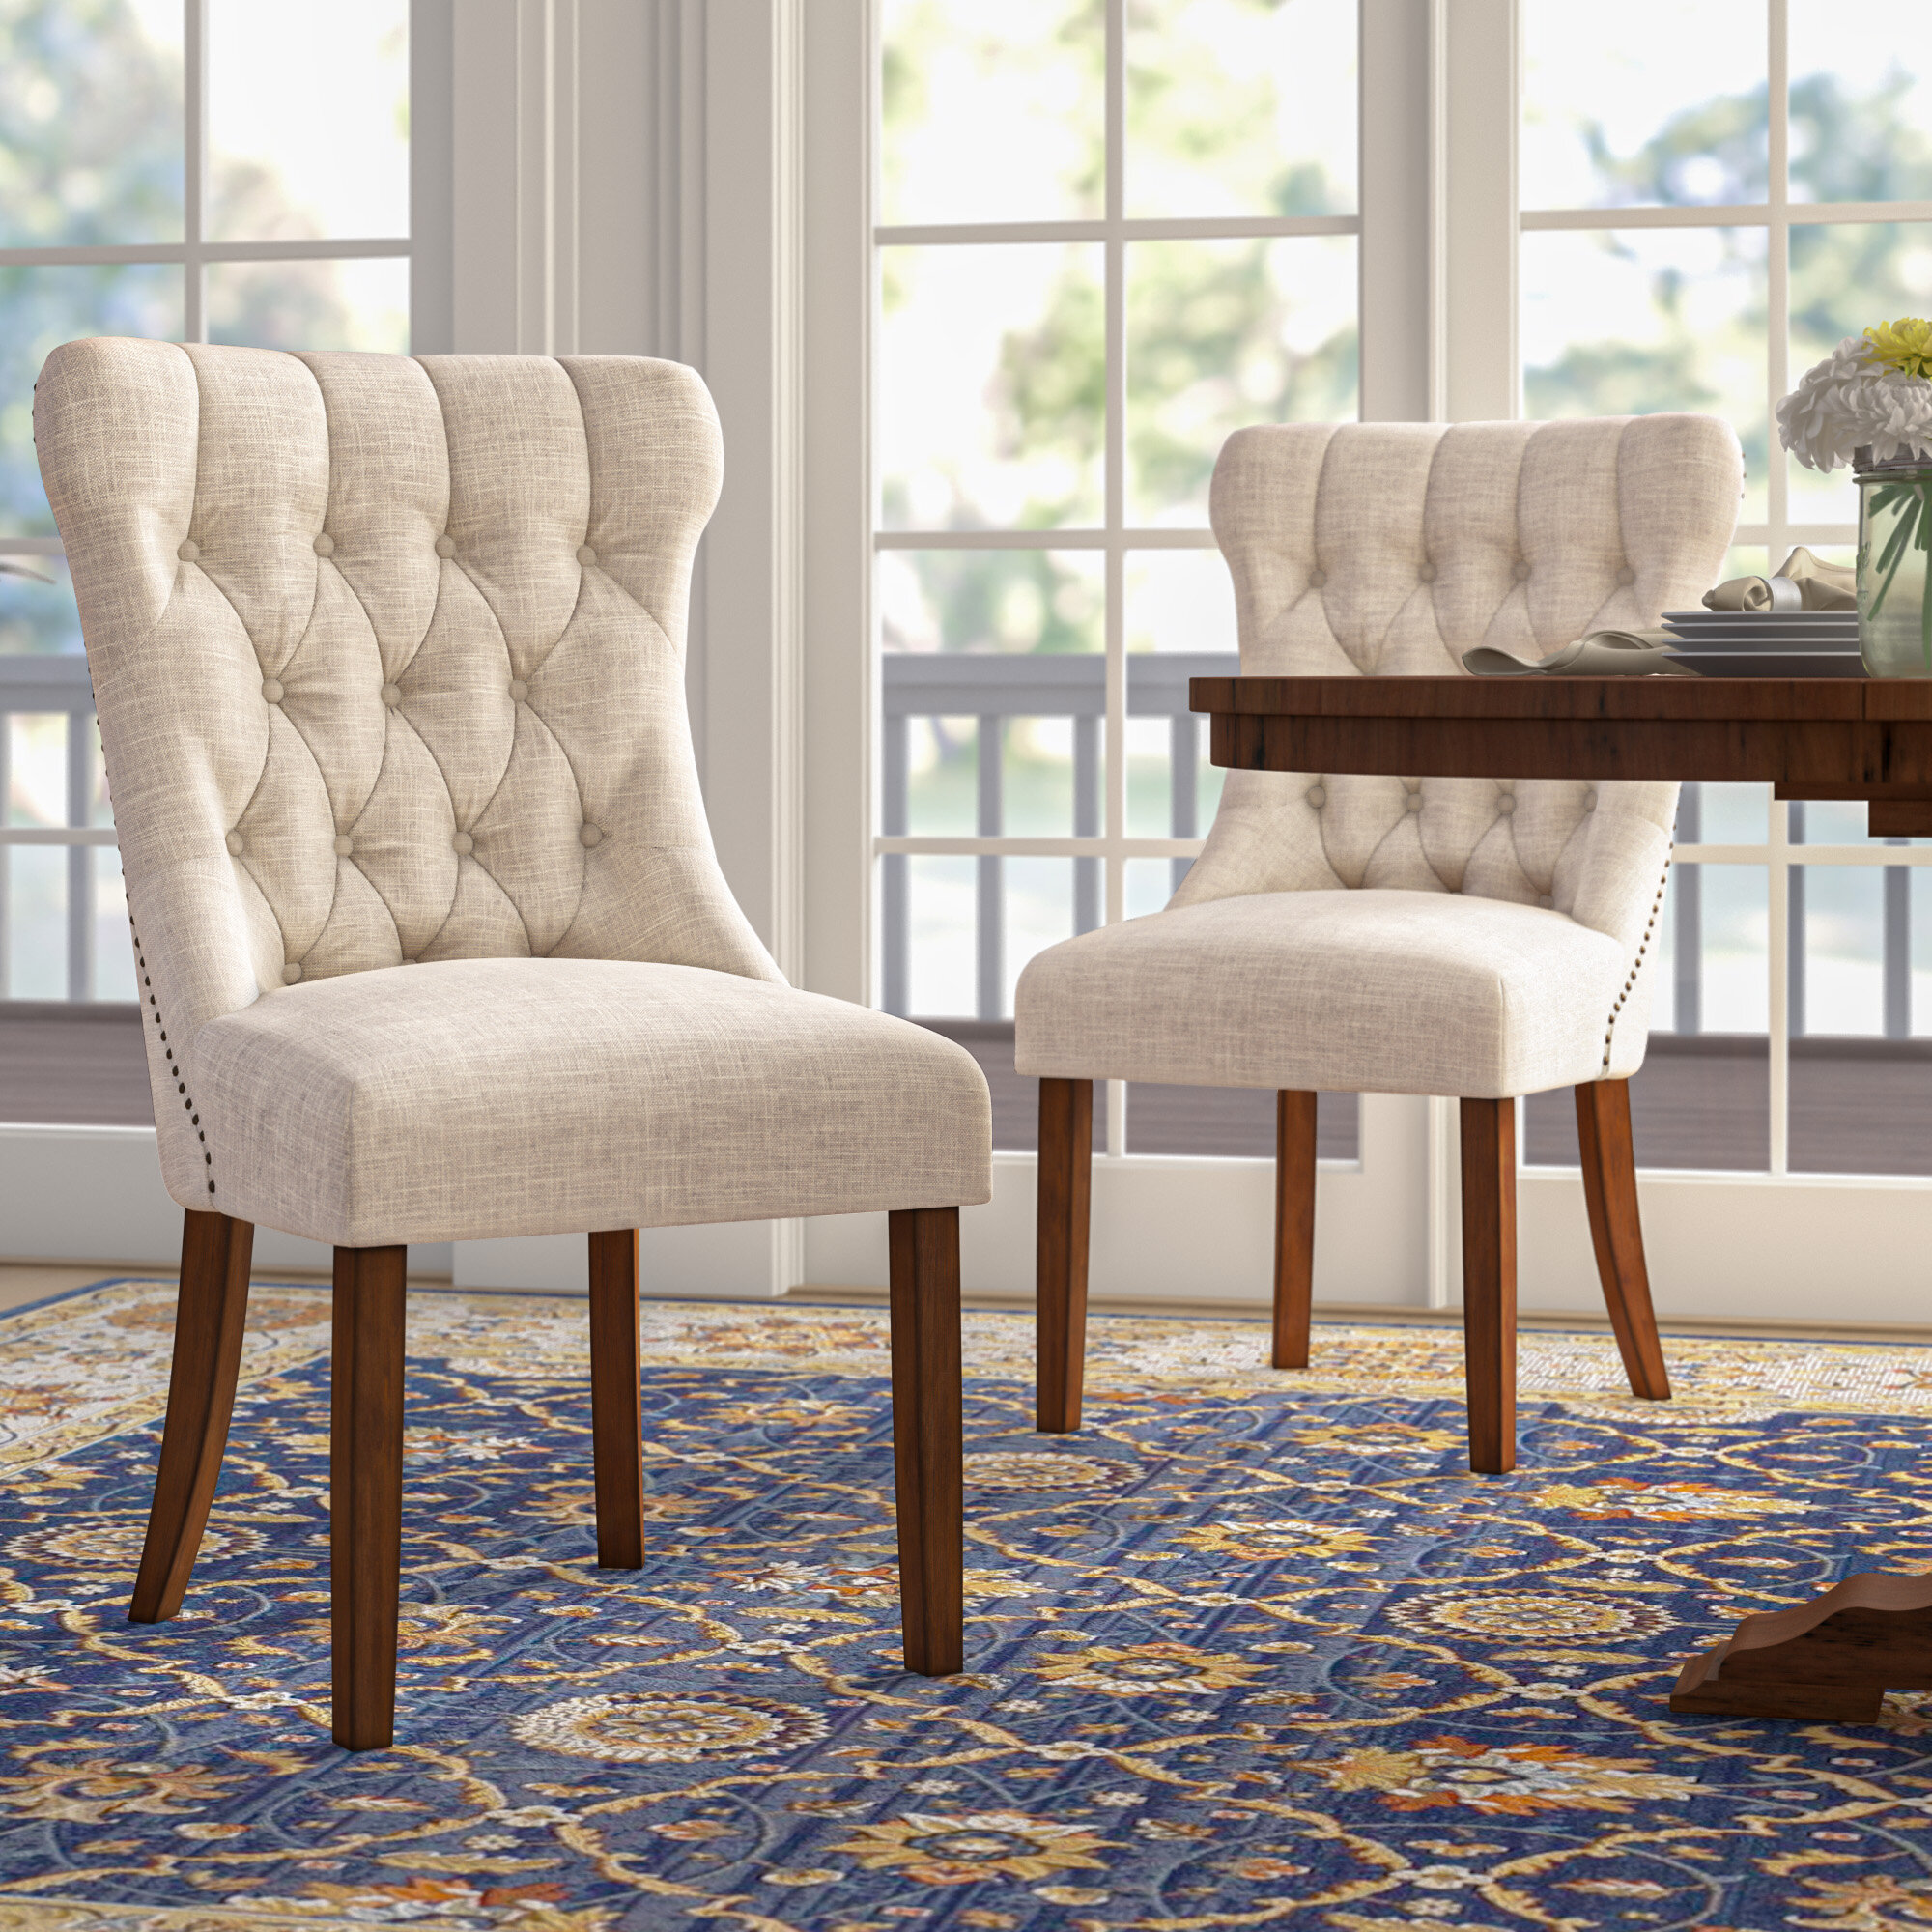 Darby Home Co Seaton Upholstered Dining Chair Reviews Wayfair